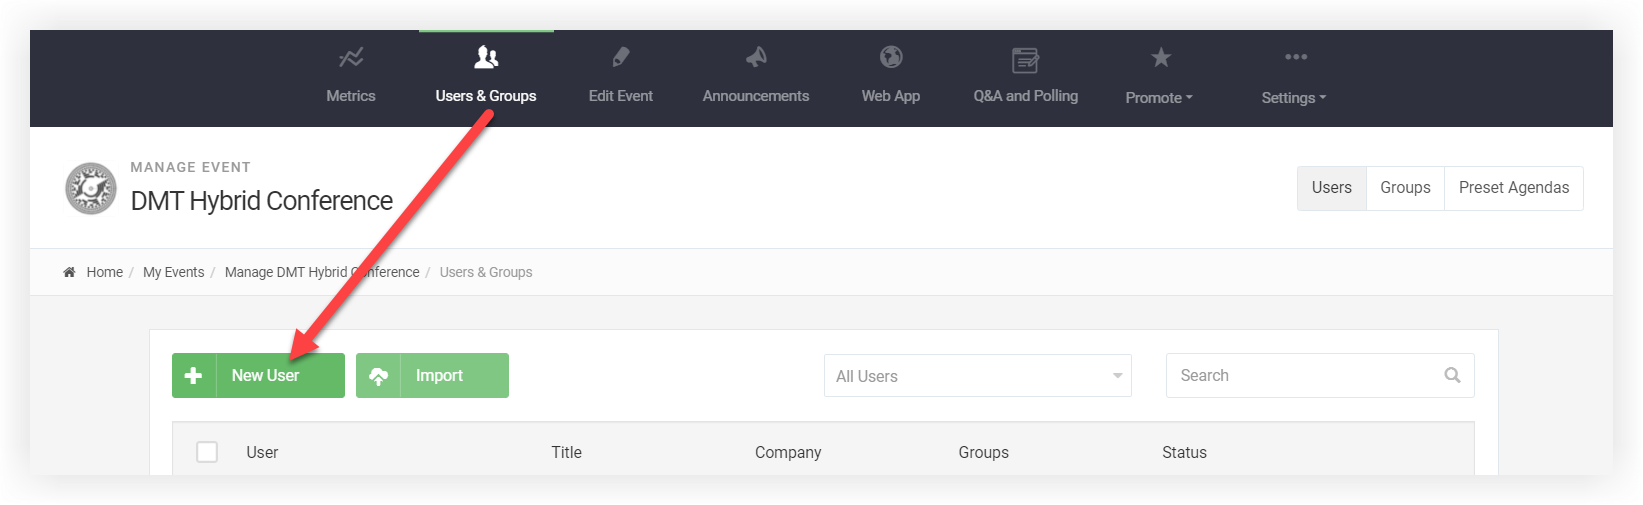 Screenshot of the Users page. The New User button is indicated.